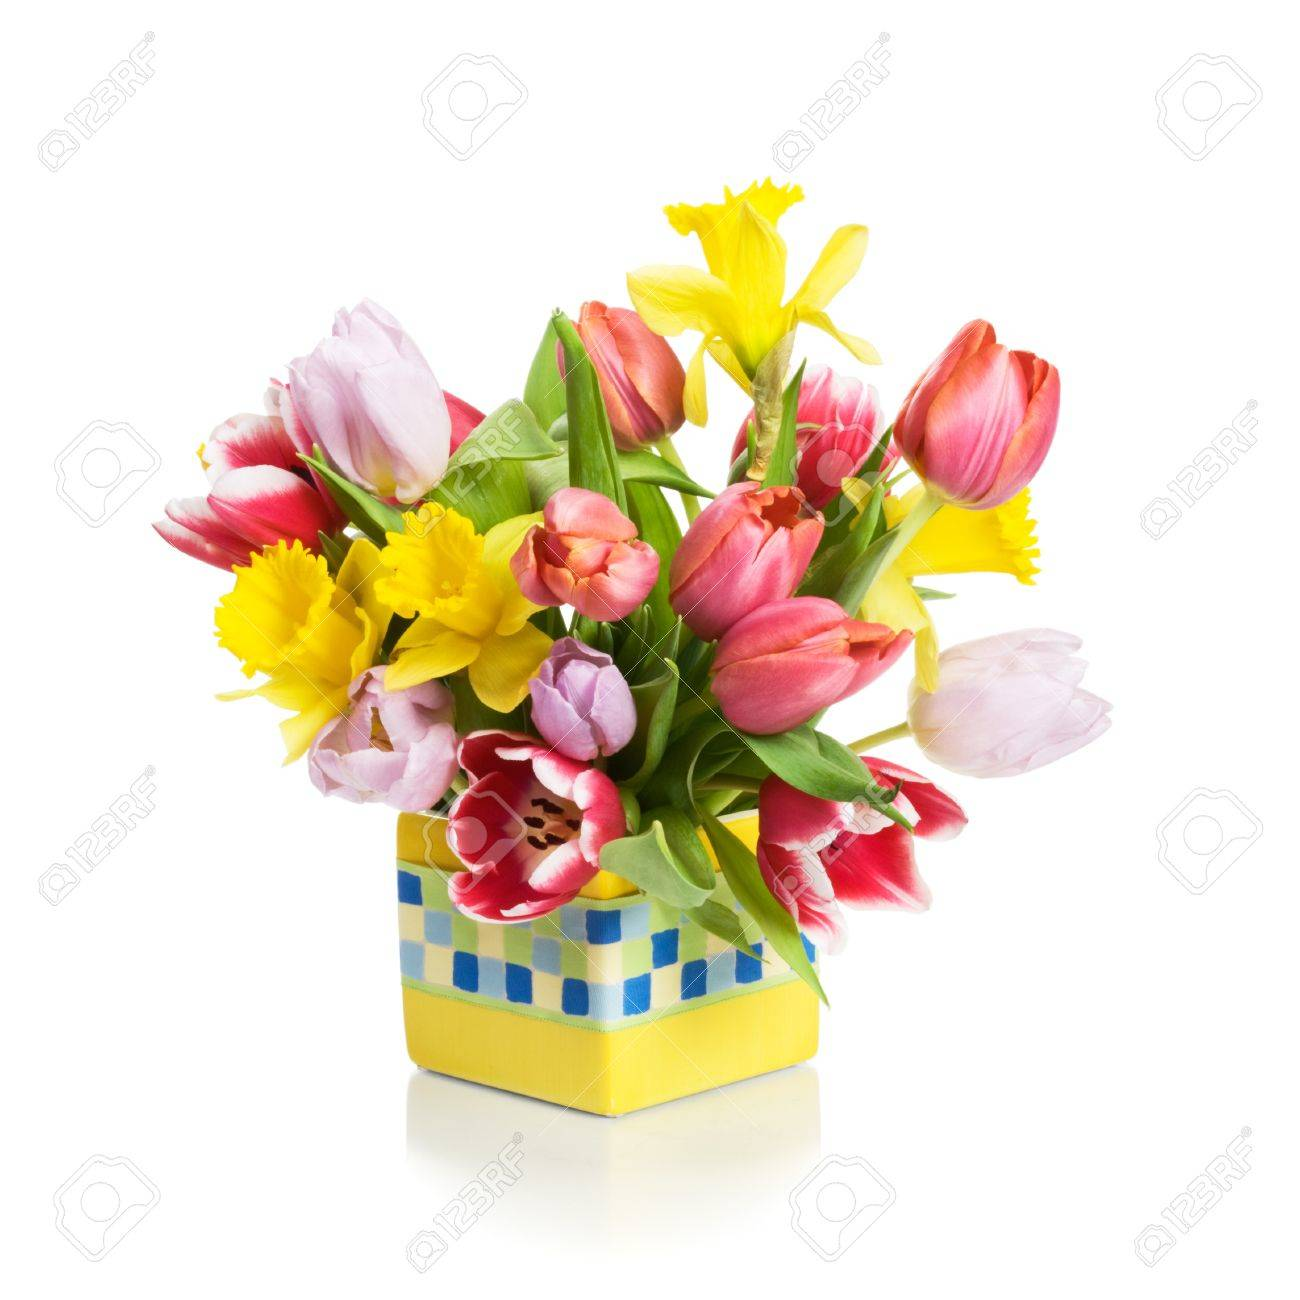 Yellow flower pot with tulips and daffodils on white background stock photo yellow flower pot with tulips and daffodils on white background mightylinksfo